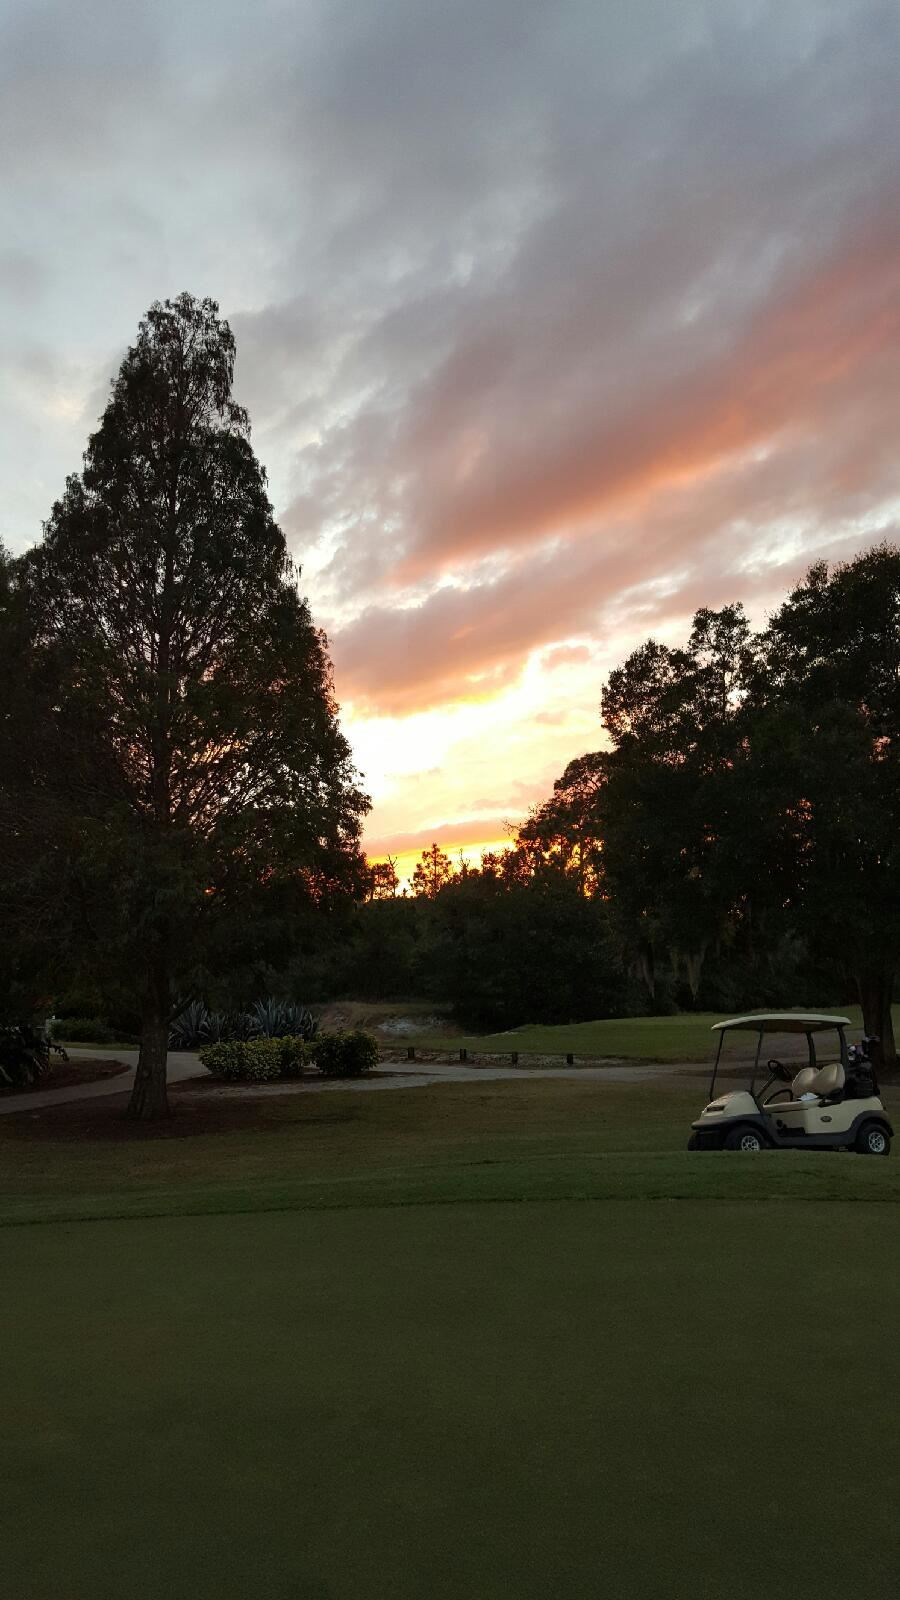 golf cart  by green at sunset